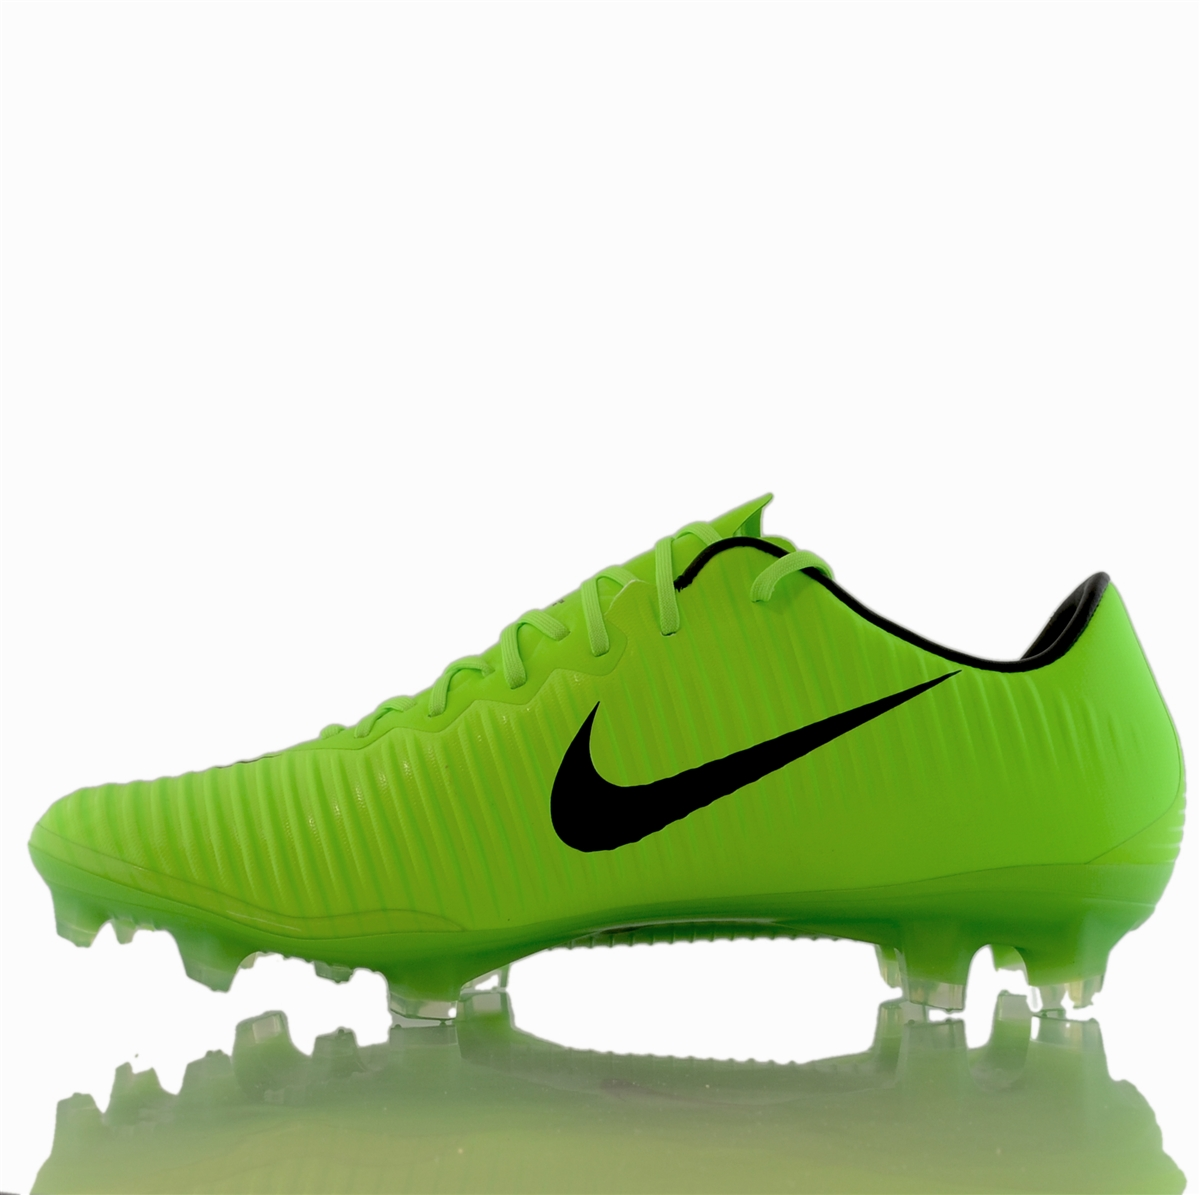 the latest 69884 a3771 Nike Mercurial Vapor XI FG Soccer Cleats (Electric Green/Black/Flash  Lime/White)